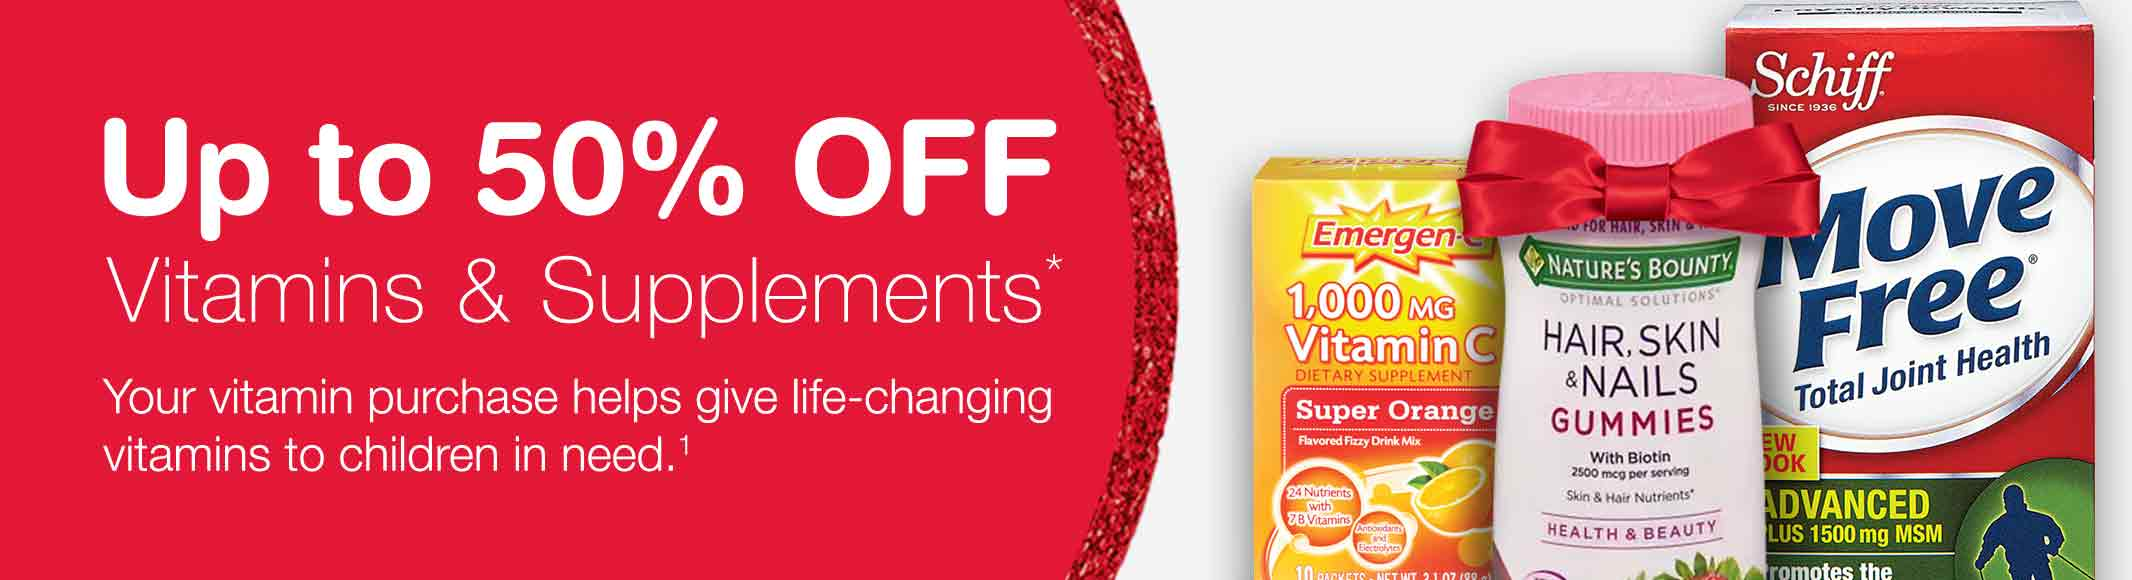 Up to 50% OFF Vitamins & Supplements.* Your vitamin purchase helps give life-changing vitamins to children in need.(1)